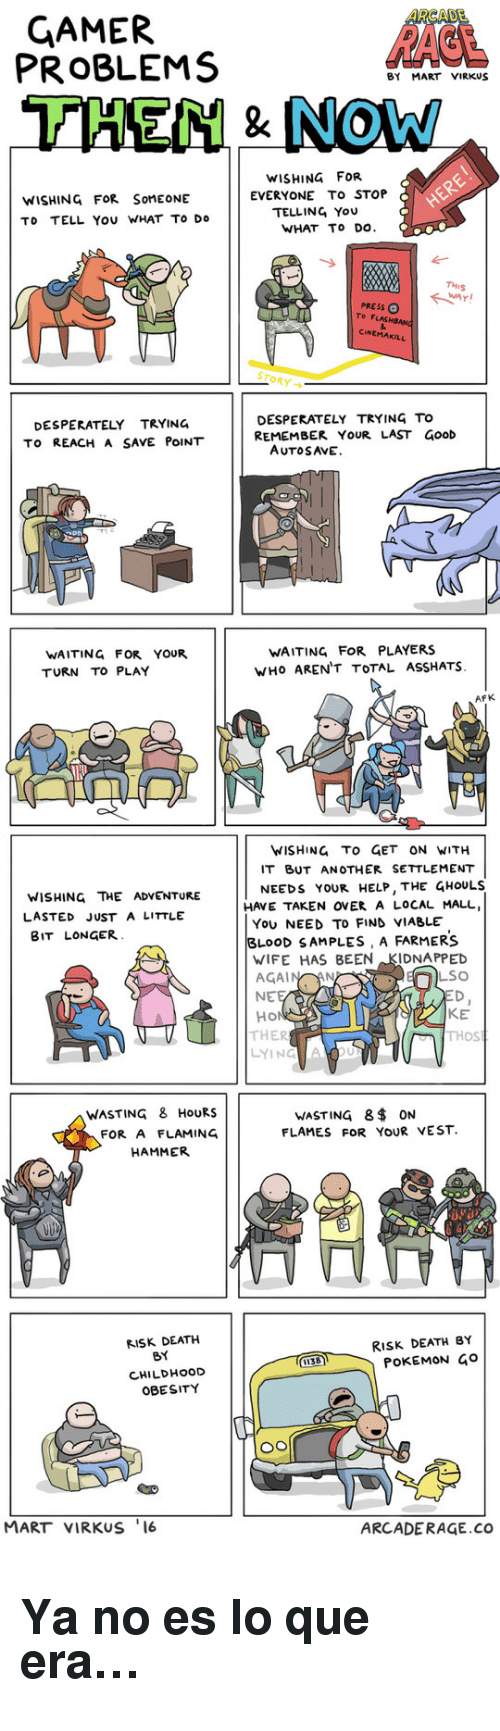 lso: ARCADE  GAMER  PROBLEMS  BY MART VIRKus  THEN NOw  WISHING FOR  EVERYONE To STOP  TELLING You  WISHING FoR SoMEONE  TO TELL YOU WHAT TO Do  WHAT To Do  THIS  PRESS  To FLASHSANG  CINEMAKILL  STORY →  DESPERATELY TRYING  TO REACH A SAvE POINT  DESPERATELY TRYING TO  REMEMBER YOUR LAST ãooD  AUTOSAVE   WAITING FOR YOUR  TURN To PLAY  WAITING FOR PLAYERS  WHO AREN'T TOTAL ASSHATS.  AFK  WISHING TO GET ON WITH  IT BUT ANOTHER SETTLEMENT  NEEDS YOUR HELP, THE GHOULS  WISHING THE ADVENTURE  LASTED JUST A LITTLE  BIT LONGER  HAVE TAKEN OVER A LOCAL MALL  You NEED To FIND VIABLE  BLOOD SAMPLES, A FARMERS  WIFE HAS BEEN KIDNAPPED  LSO  NE  Ho  KE  THOS  THER  LYING  WASTING 8$ ON  FLAMES FOR YOUR VEST.  WASTING 8 HoURS  FOR A FLAMING  HAMMER   RISK DEATH  BY  CHILDHoOD  OBESITY  RIsk DEATH BY  POKEMON Go  MART VIRKUS 16  ARCADERAGE.COo <h2>Ya no es lo que era&hellip;</h2>